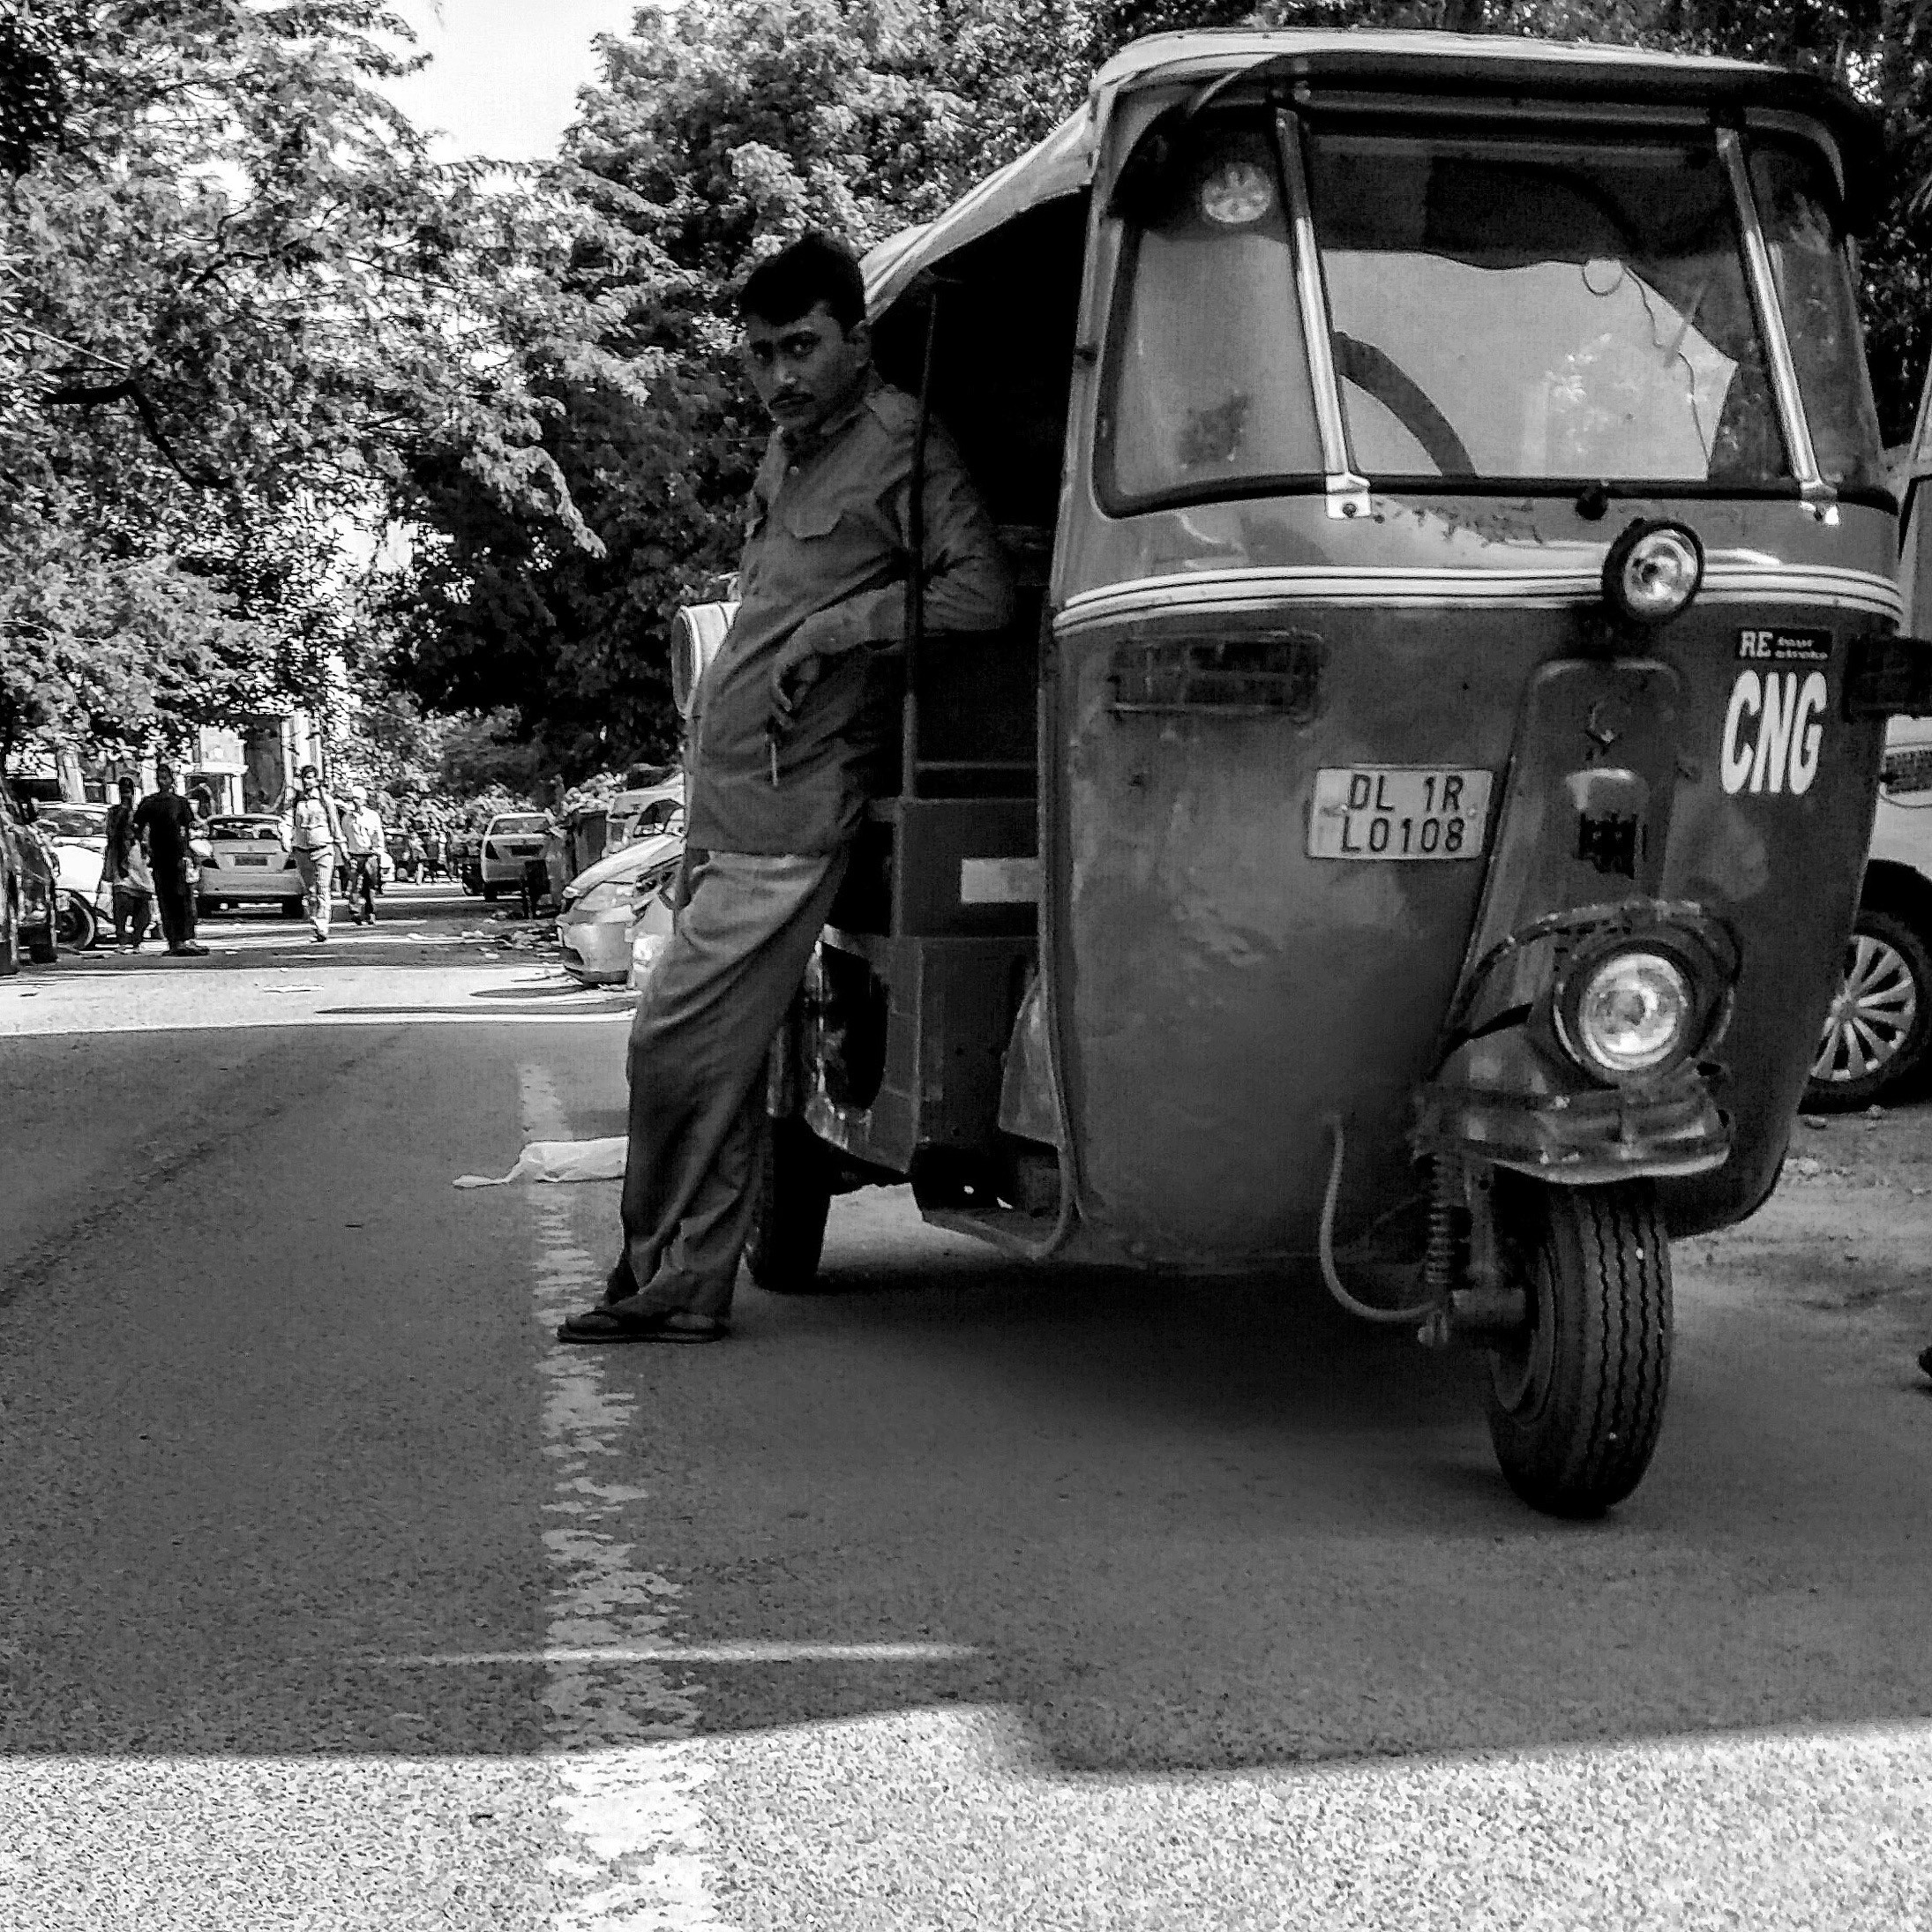 An auto-rickshaw driver waits outside Gulmohar Park, an affluent, upmarket and green neighbourhood in South Delhi.